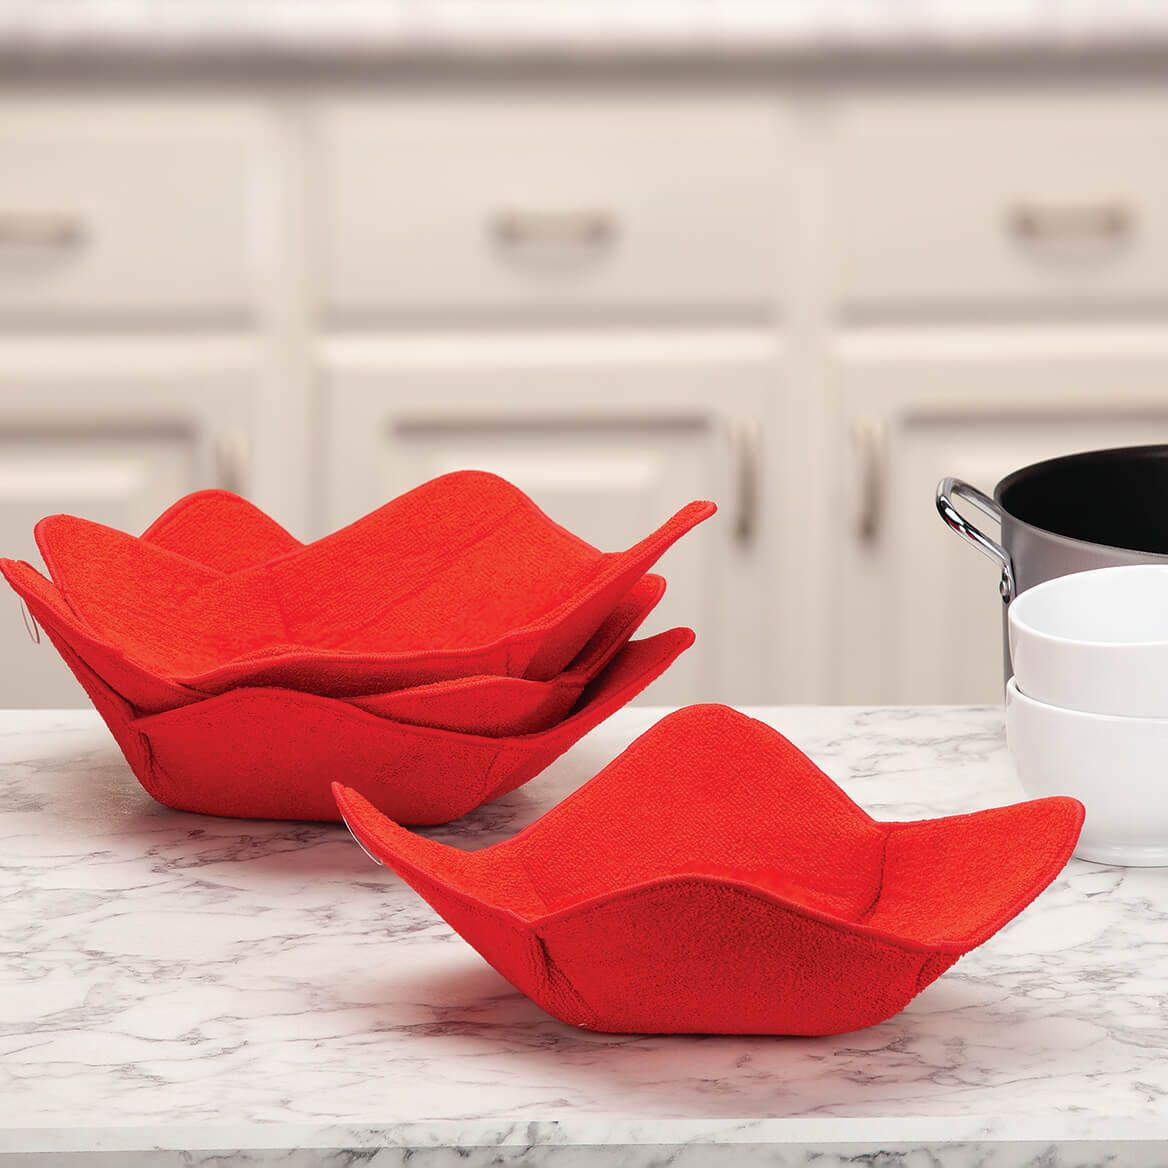 Plate Huggers, Set of 4 by Chef's Pride-372364